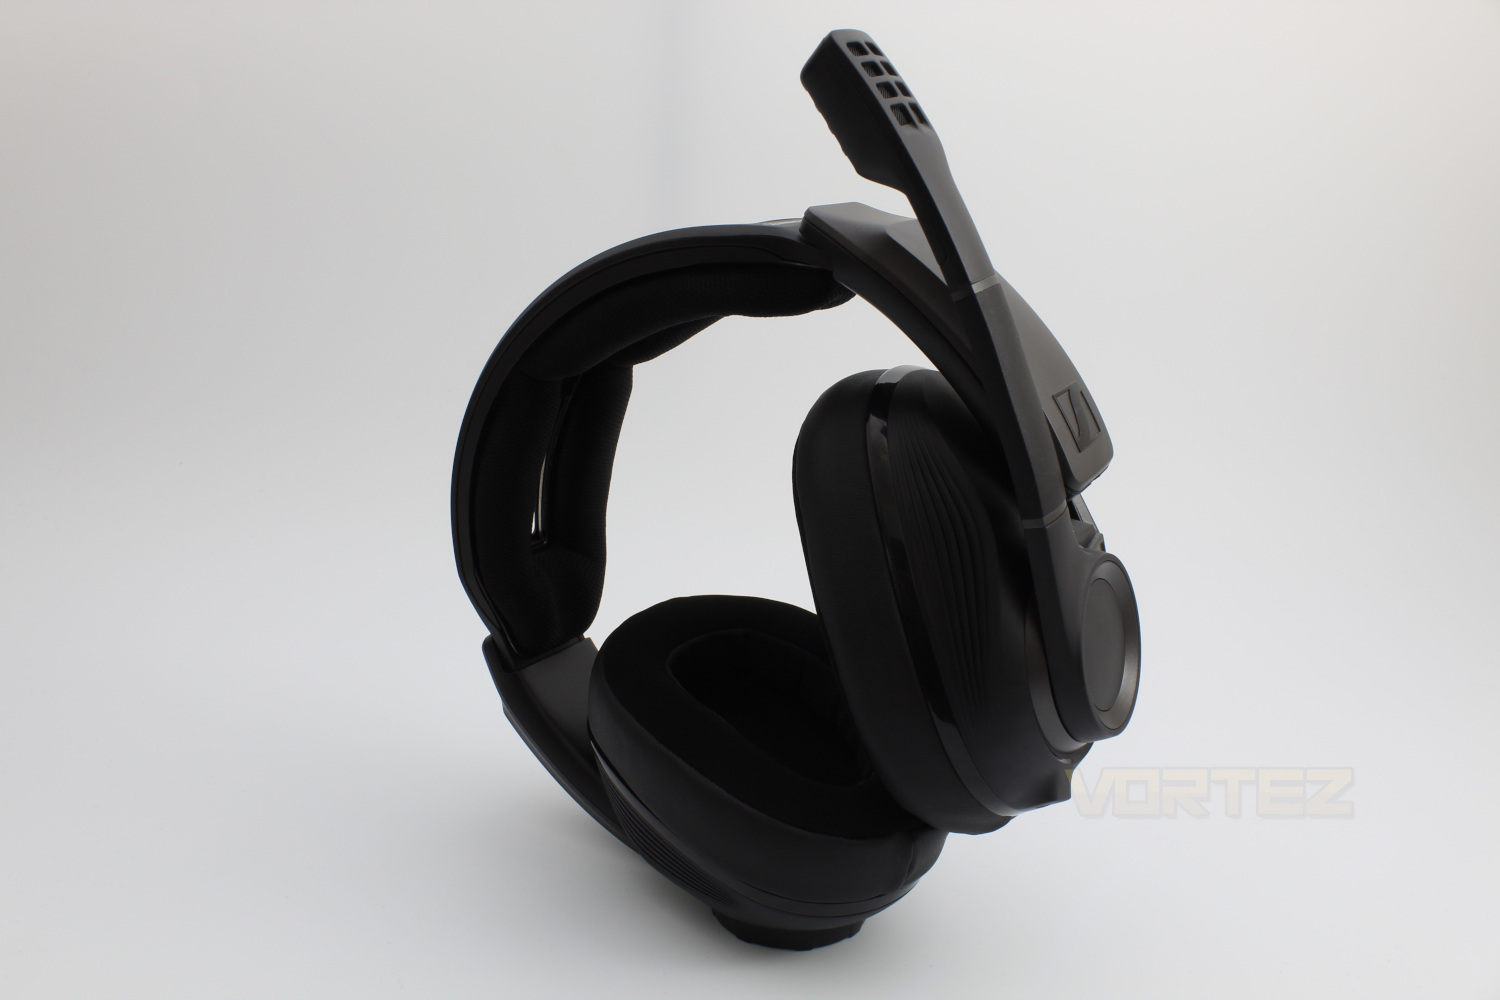 Sennheiser GSP670 Wireless Gaming Review - Introduction